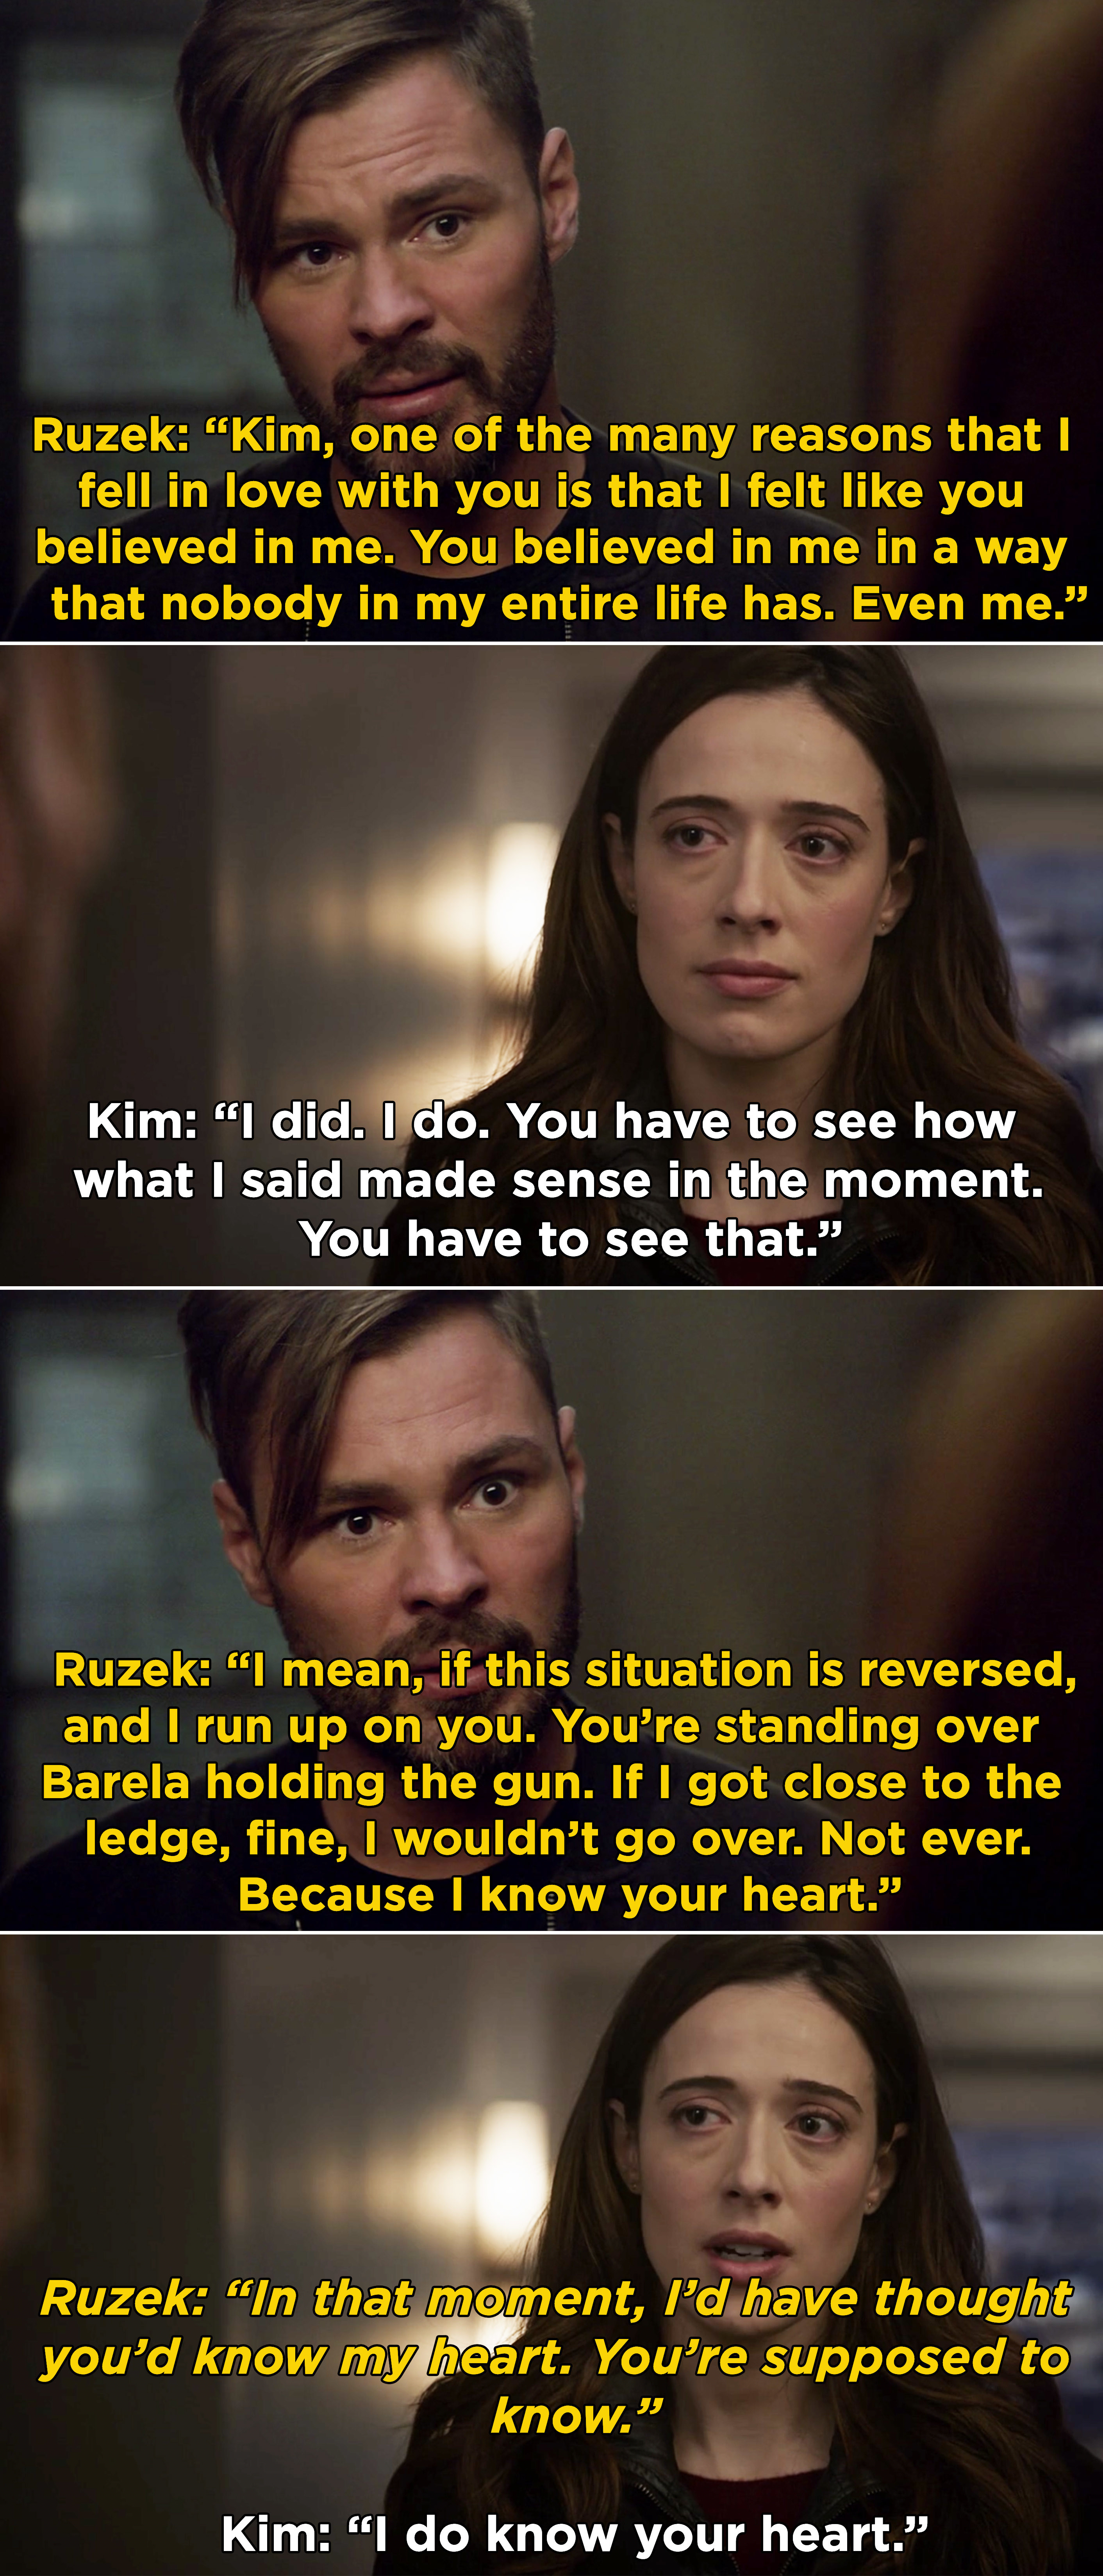 """Ruzek telling Kim he would never accuse her of killing someone to save her family, and saying, """"Because I know your heart. In that moment, I'd have thought you'd know my heart"""""""